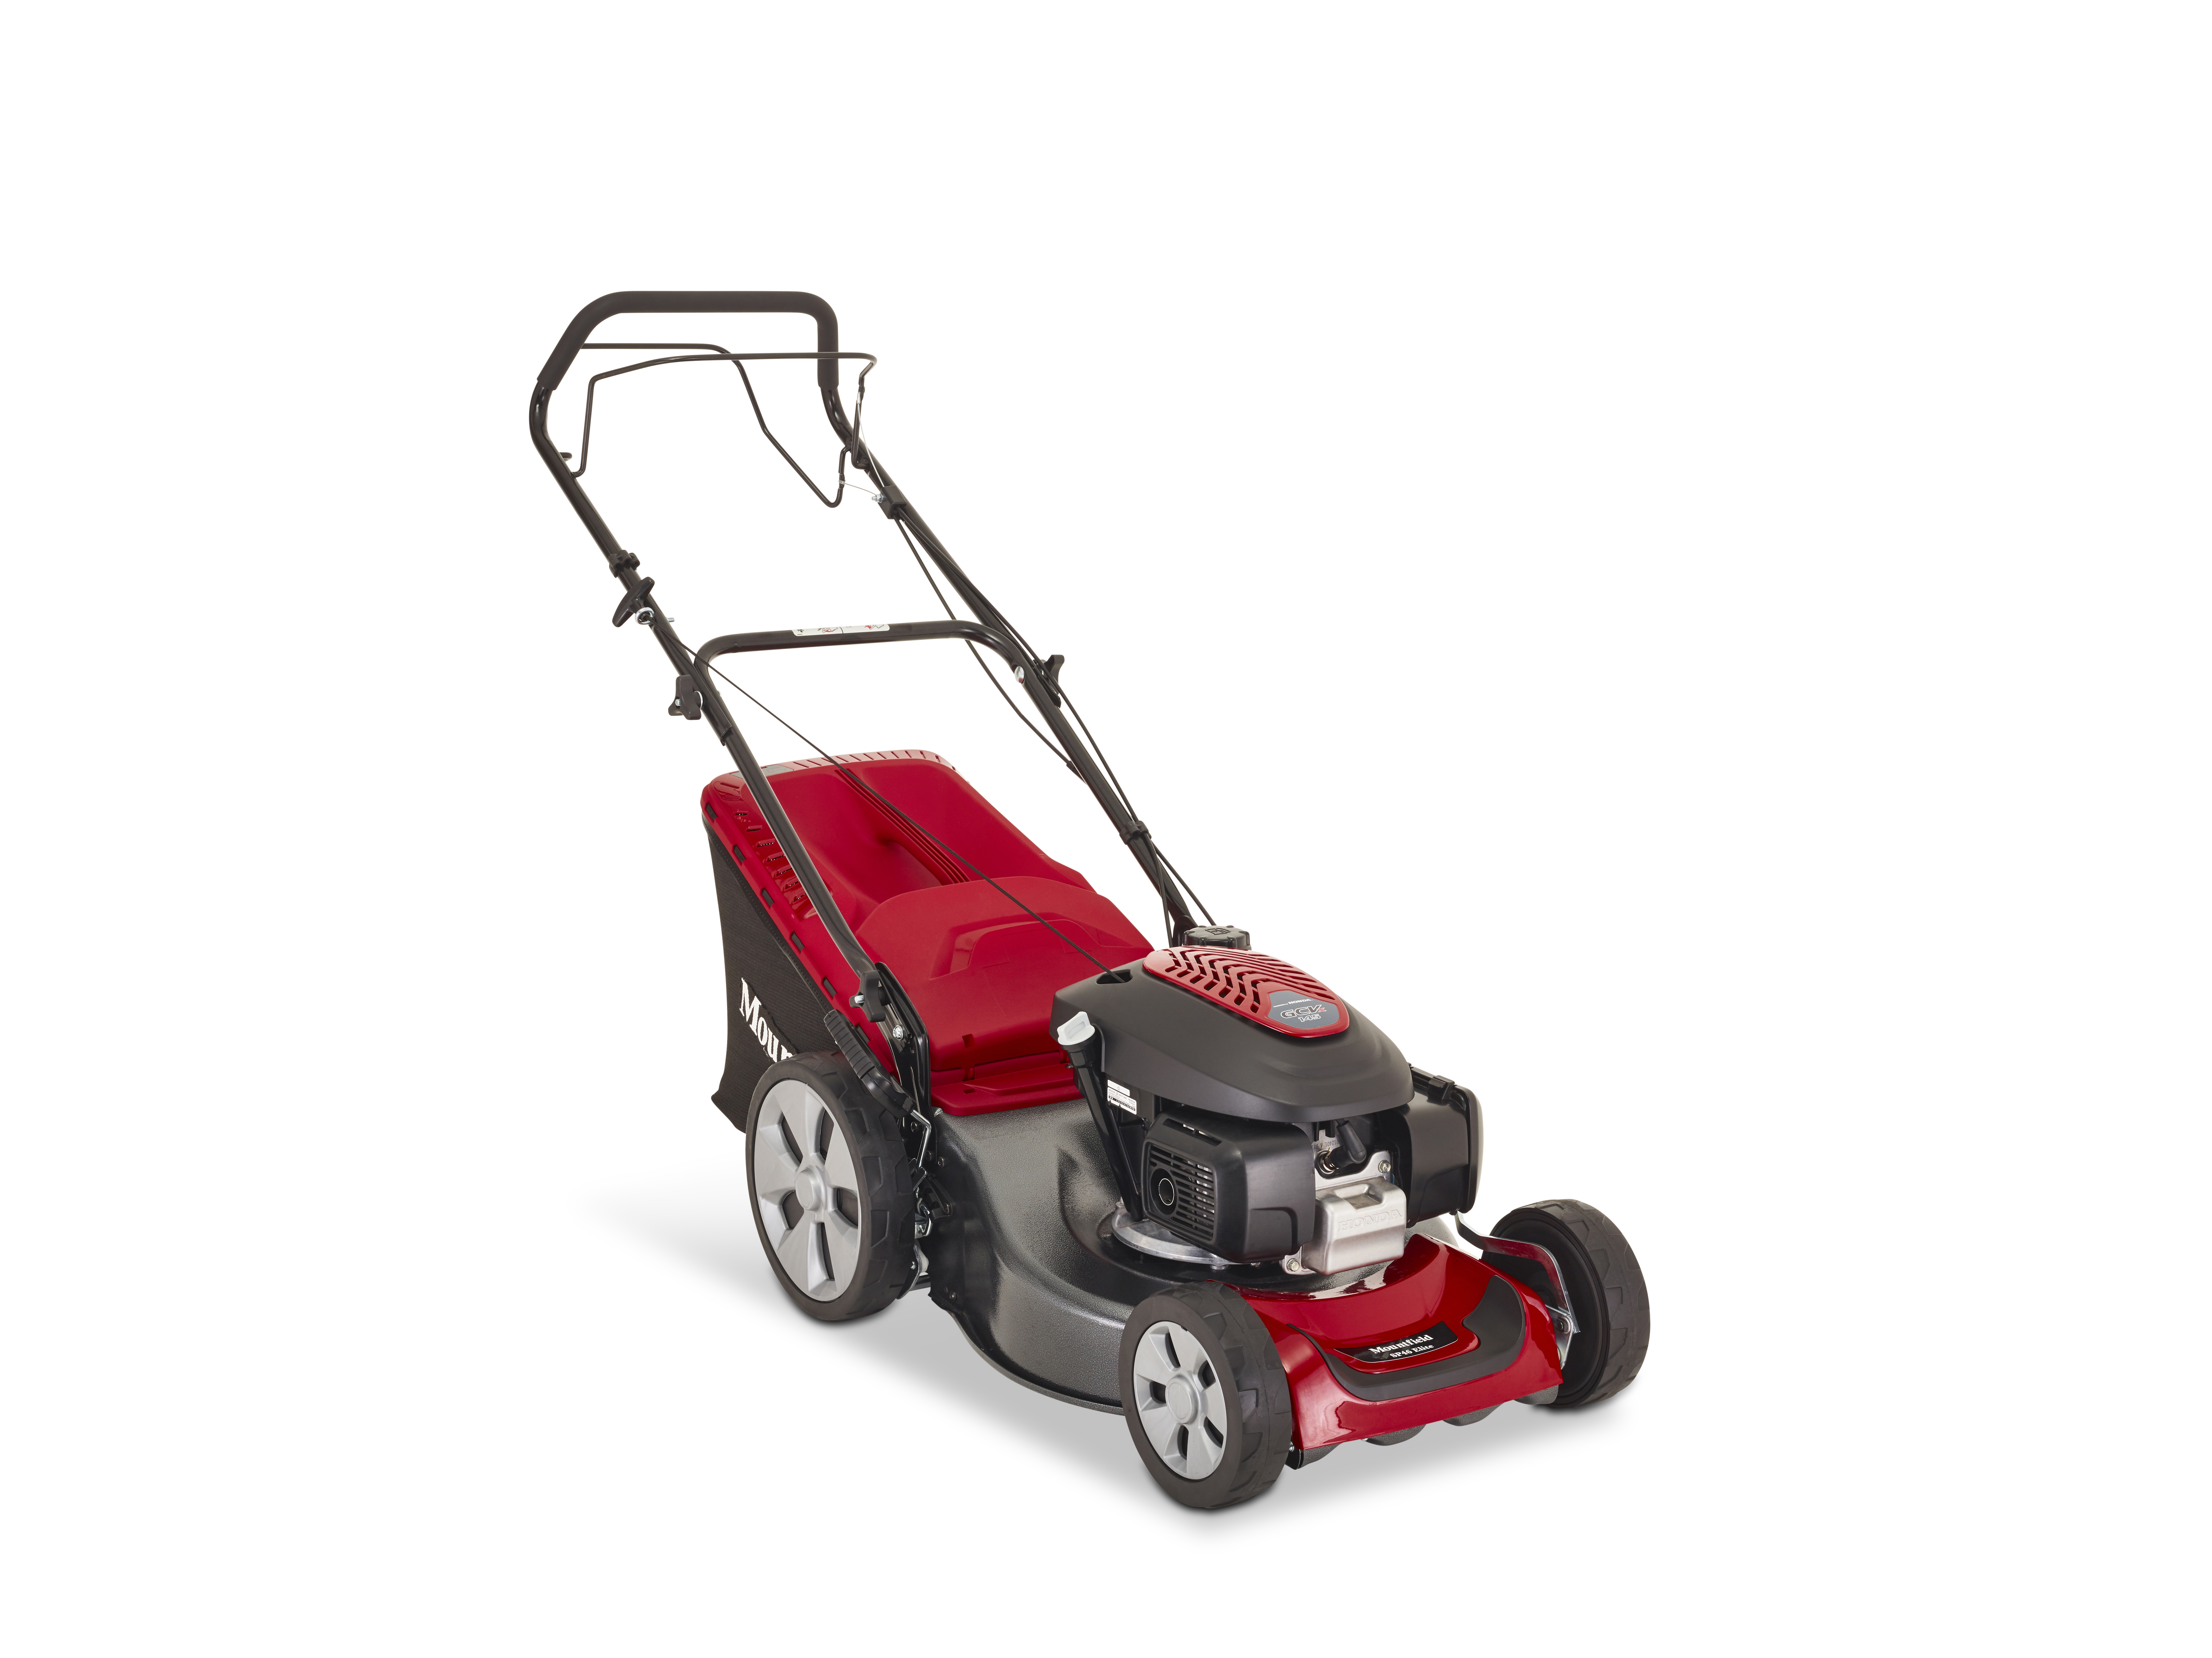 MOUNTFIELD SP46 Elite Petrol Lawnmower